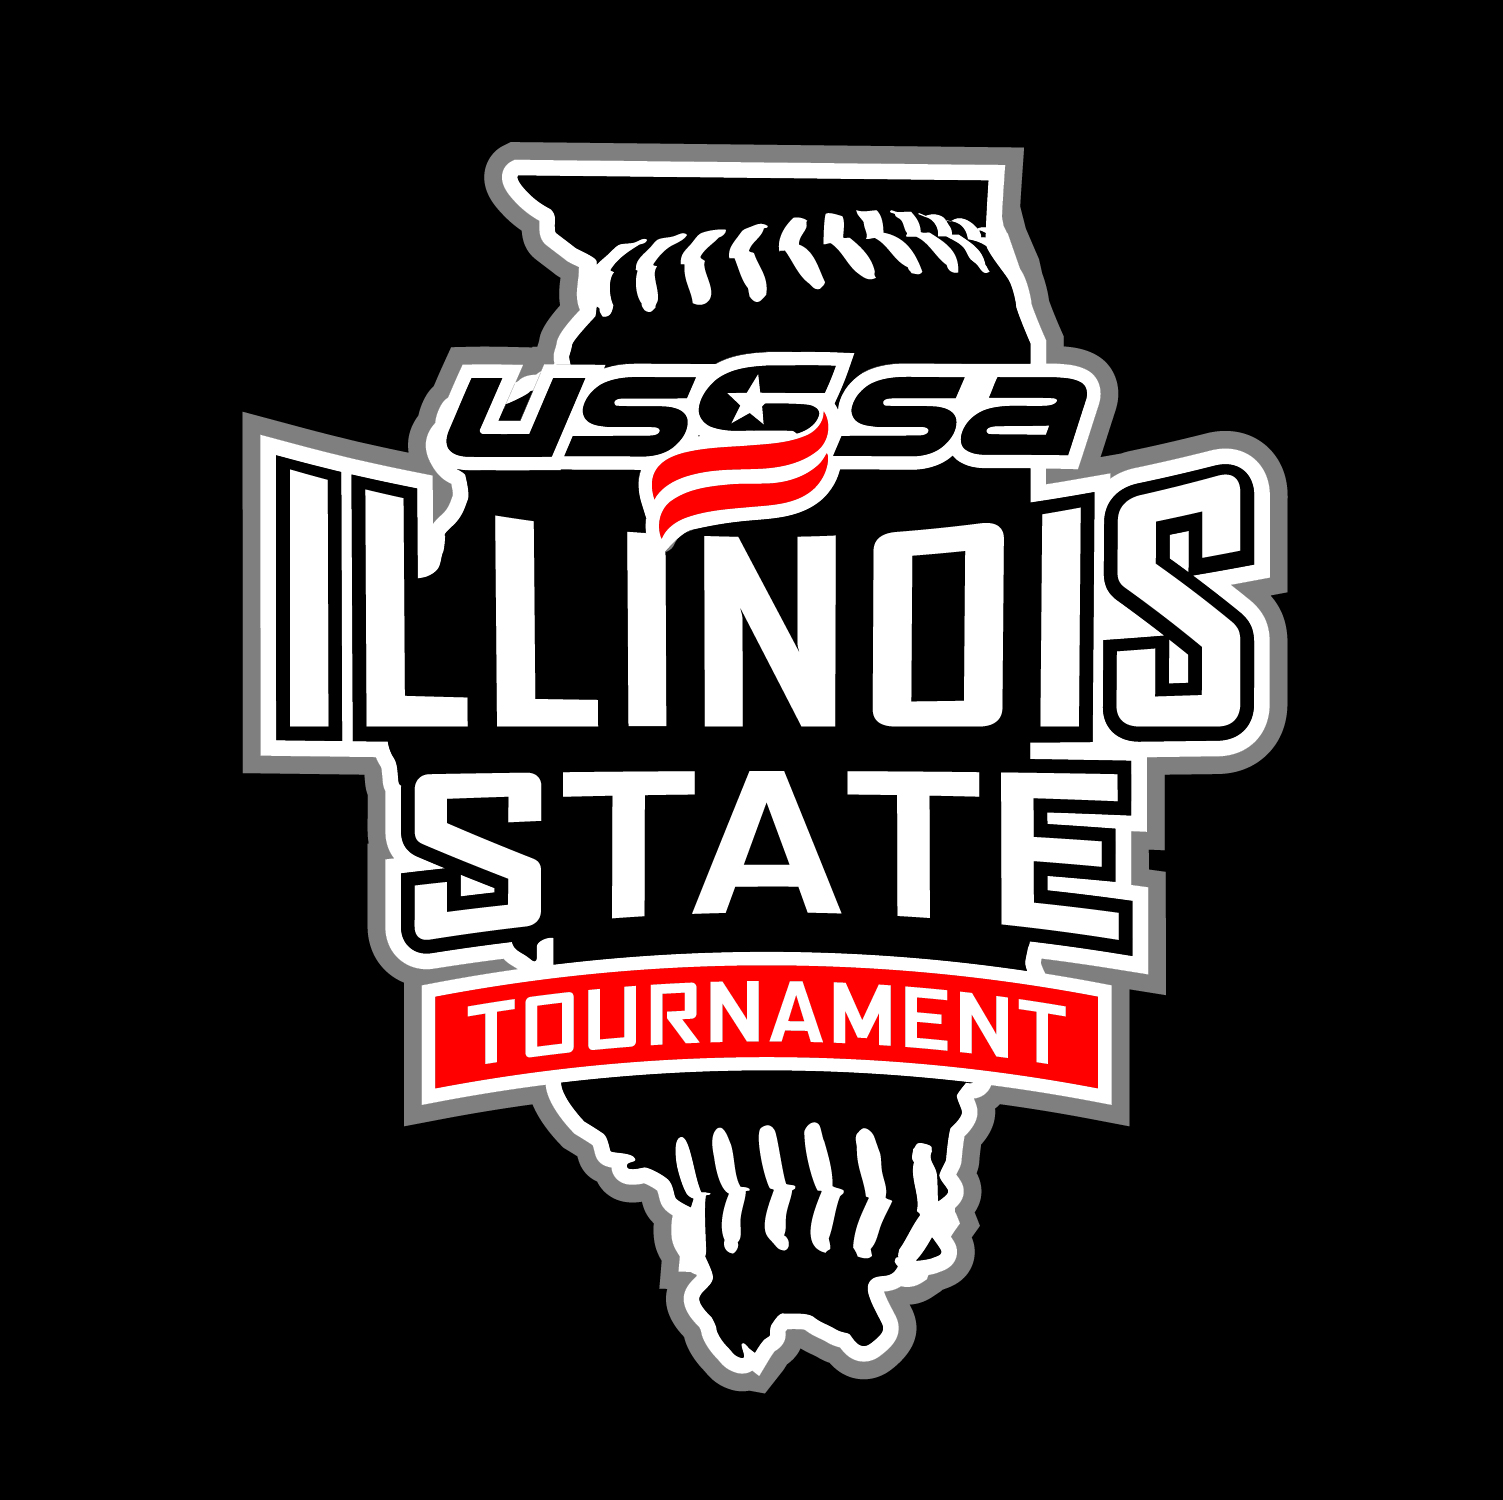 IllinoisStateTournament OnDark